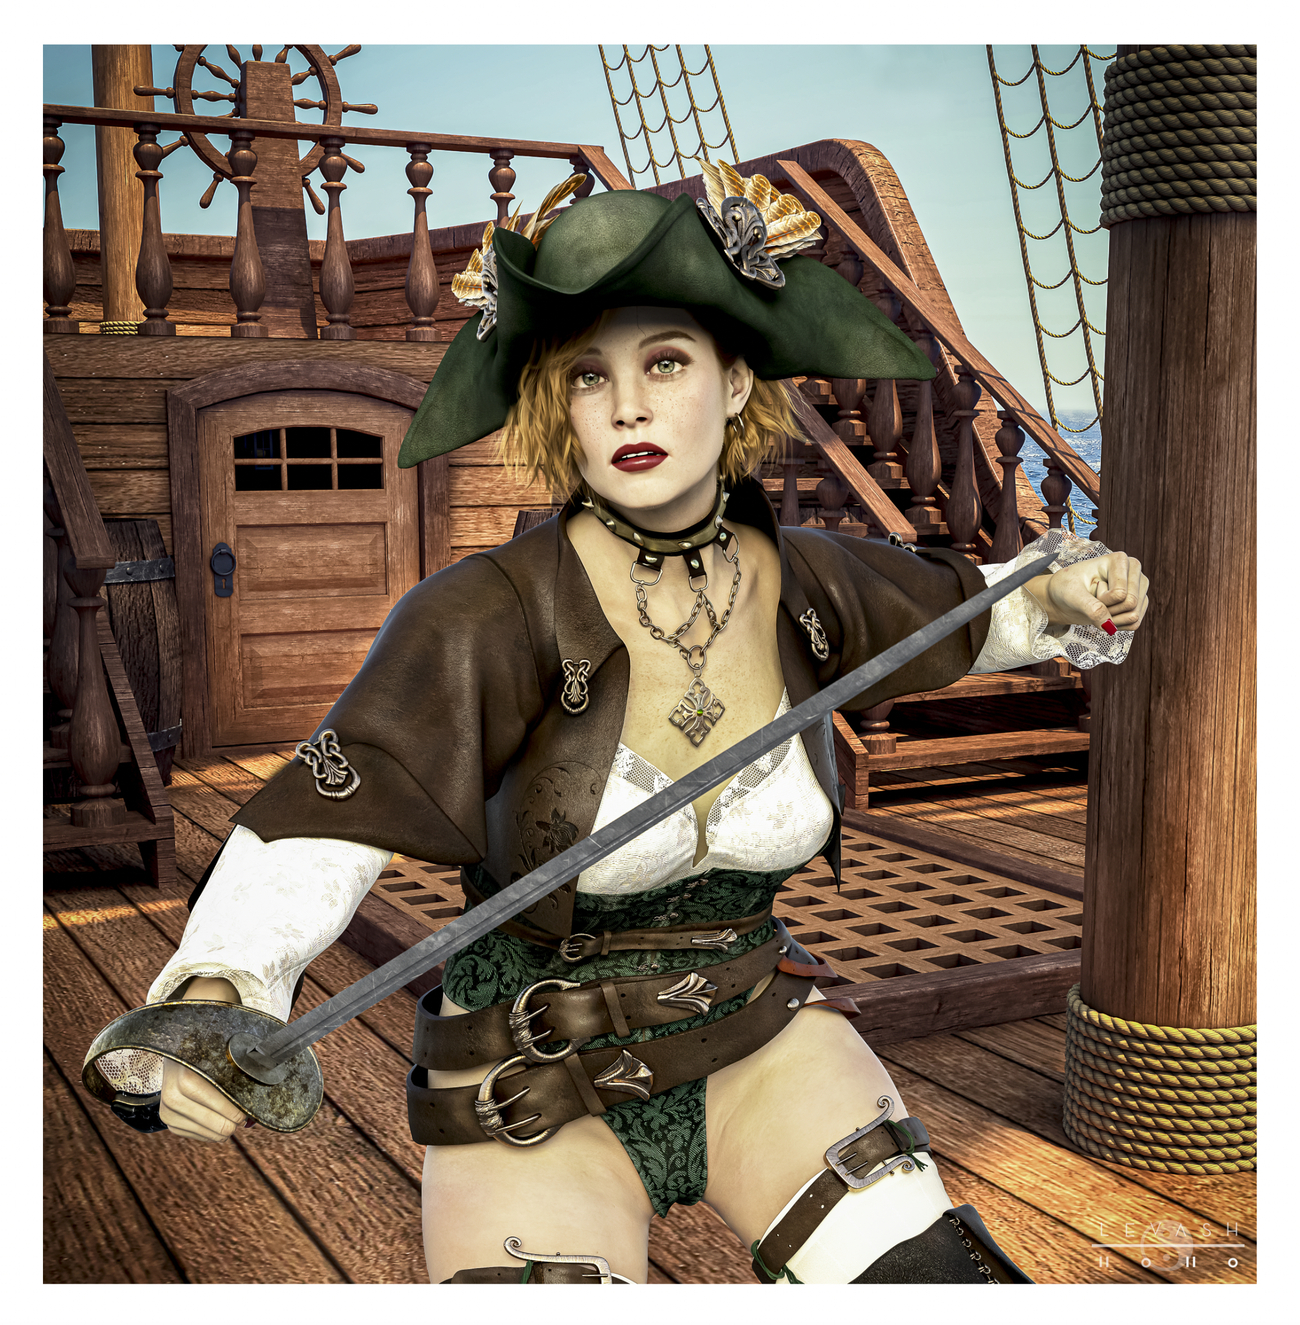 MUTINY ON THE BOUNTY by ASimple3DGuy